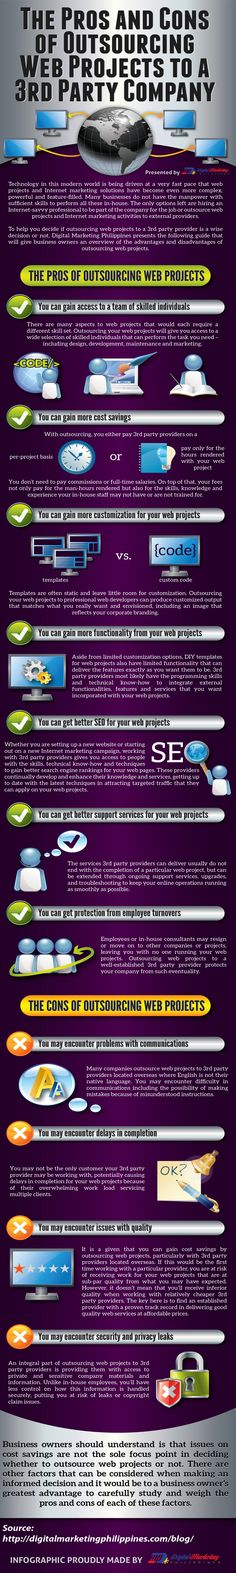 The Pros and Cons of #Outsourcing #WebProjects to a 3rd Party Company #Infographic. Like and share!